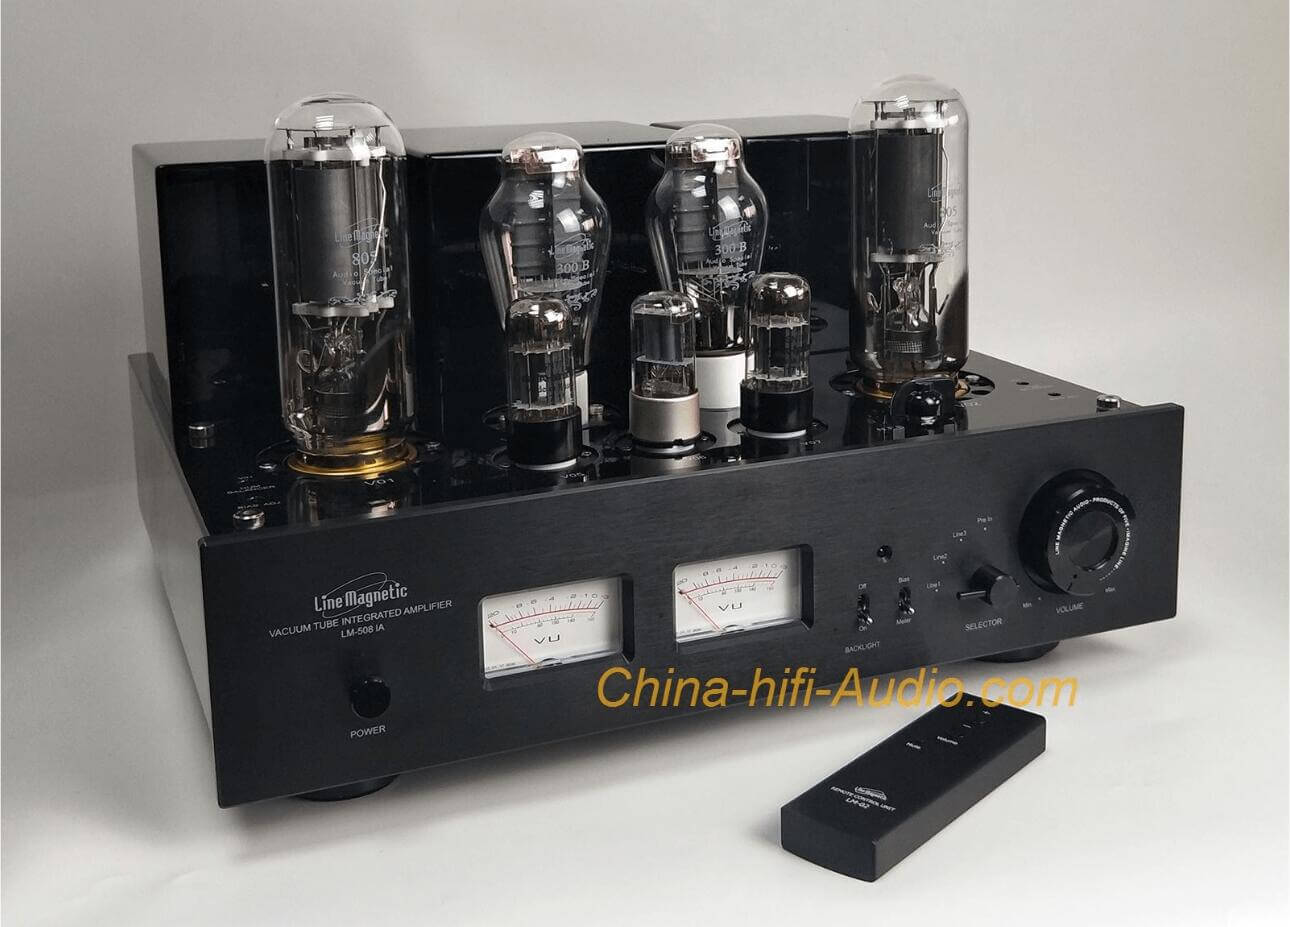 China-hifi-Audio Supplies New Audiophile Tube Amplifiers At Affordable Price To Let Everyone Could Enjoy Quality Sound